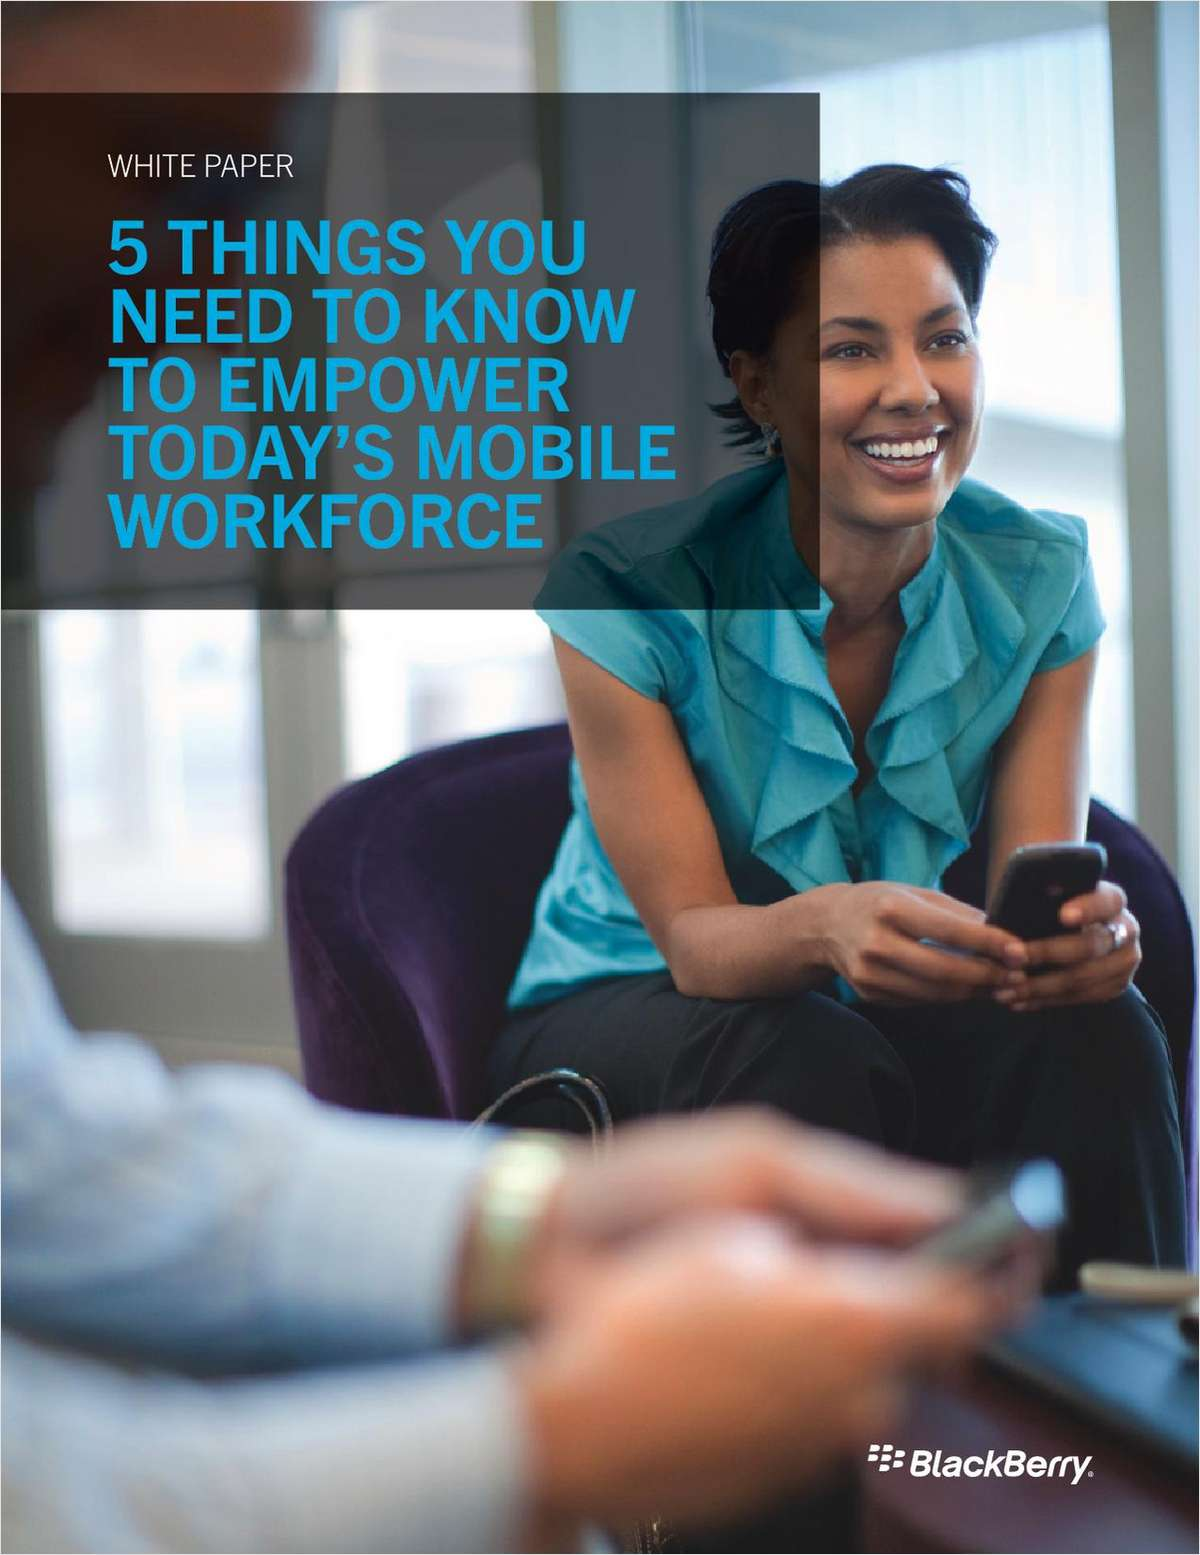 5 Things You Need to Know to Empower Today's Mobile Workforce